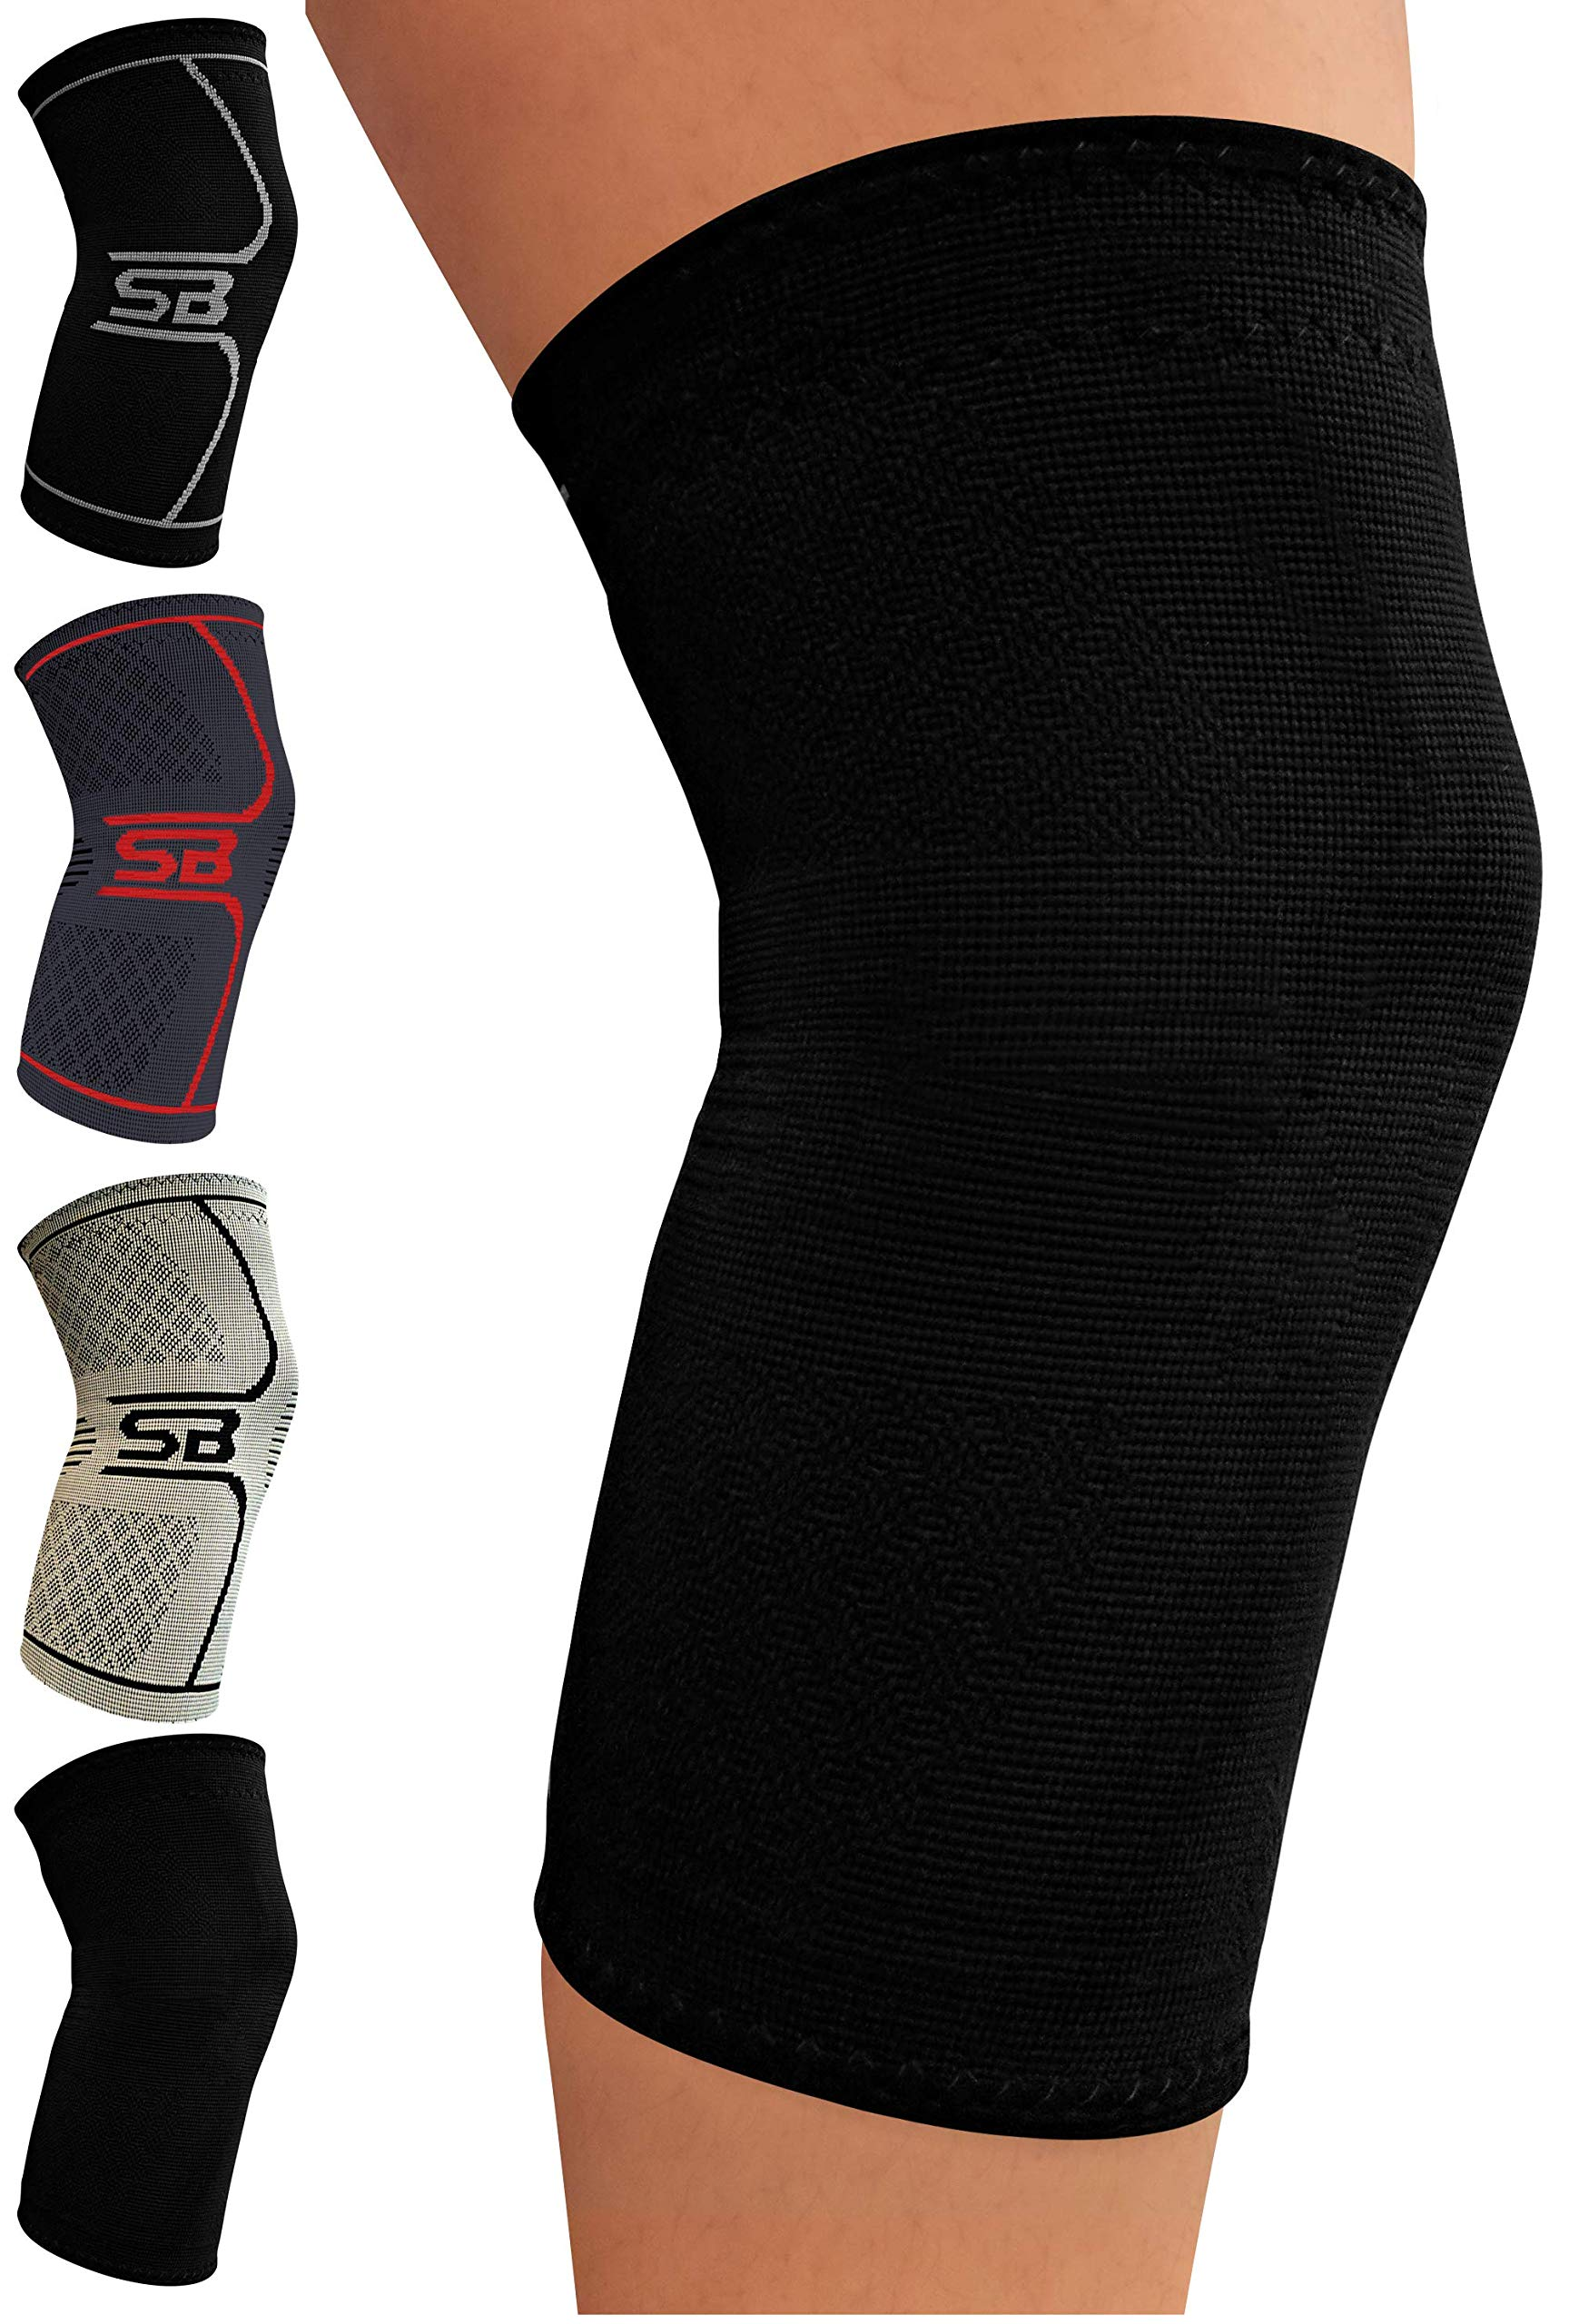 e4336c2d1f962d SB SOX Compression Knee Brace - Great Support That Stays in Place - Perfect  for Recovery